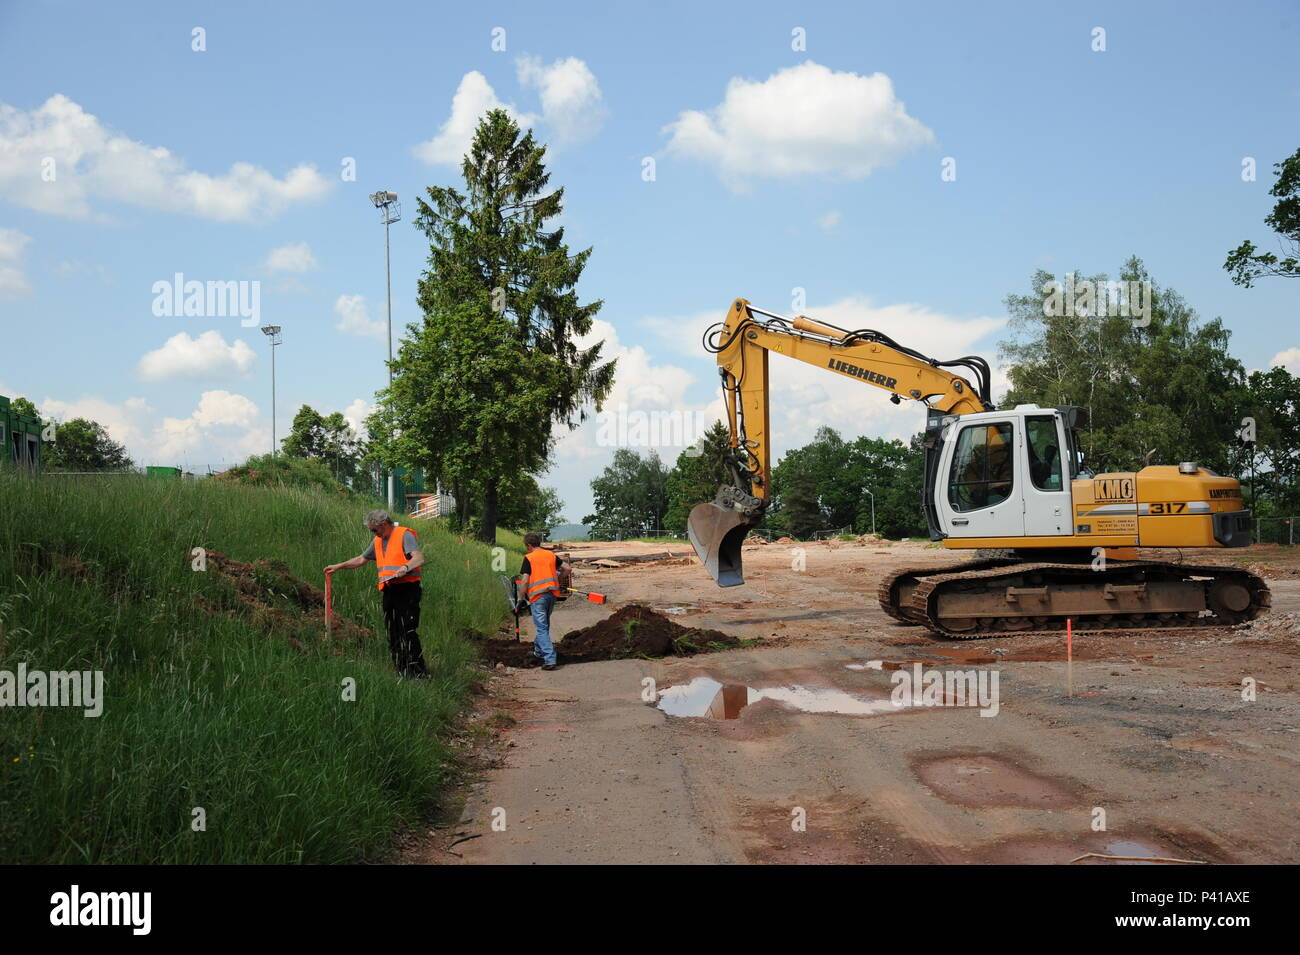 Excavation work close to the Soldier's Field (Sportsfield) near the Rheinlander Club in Baumholder, Germany, June 6, 2016. The Buildings 8688, 8687 and 8686 are already teared down. Here and below the Rheinlander Club Building will be build a total of 70 new Townhouses. Today a German Construction Company do groundworks and searching the area for aircraft bombs and other remains of World War II or metal that forget during the post-war era.  Baumholder was several times bombed by the U.S. Air Force and the British Royal Air Force in   World War II. You still find relics from wartime.   (U.S. Ar - Stock Image